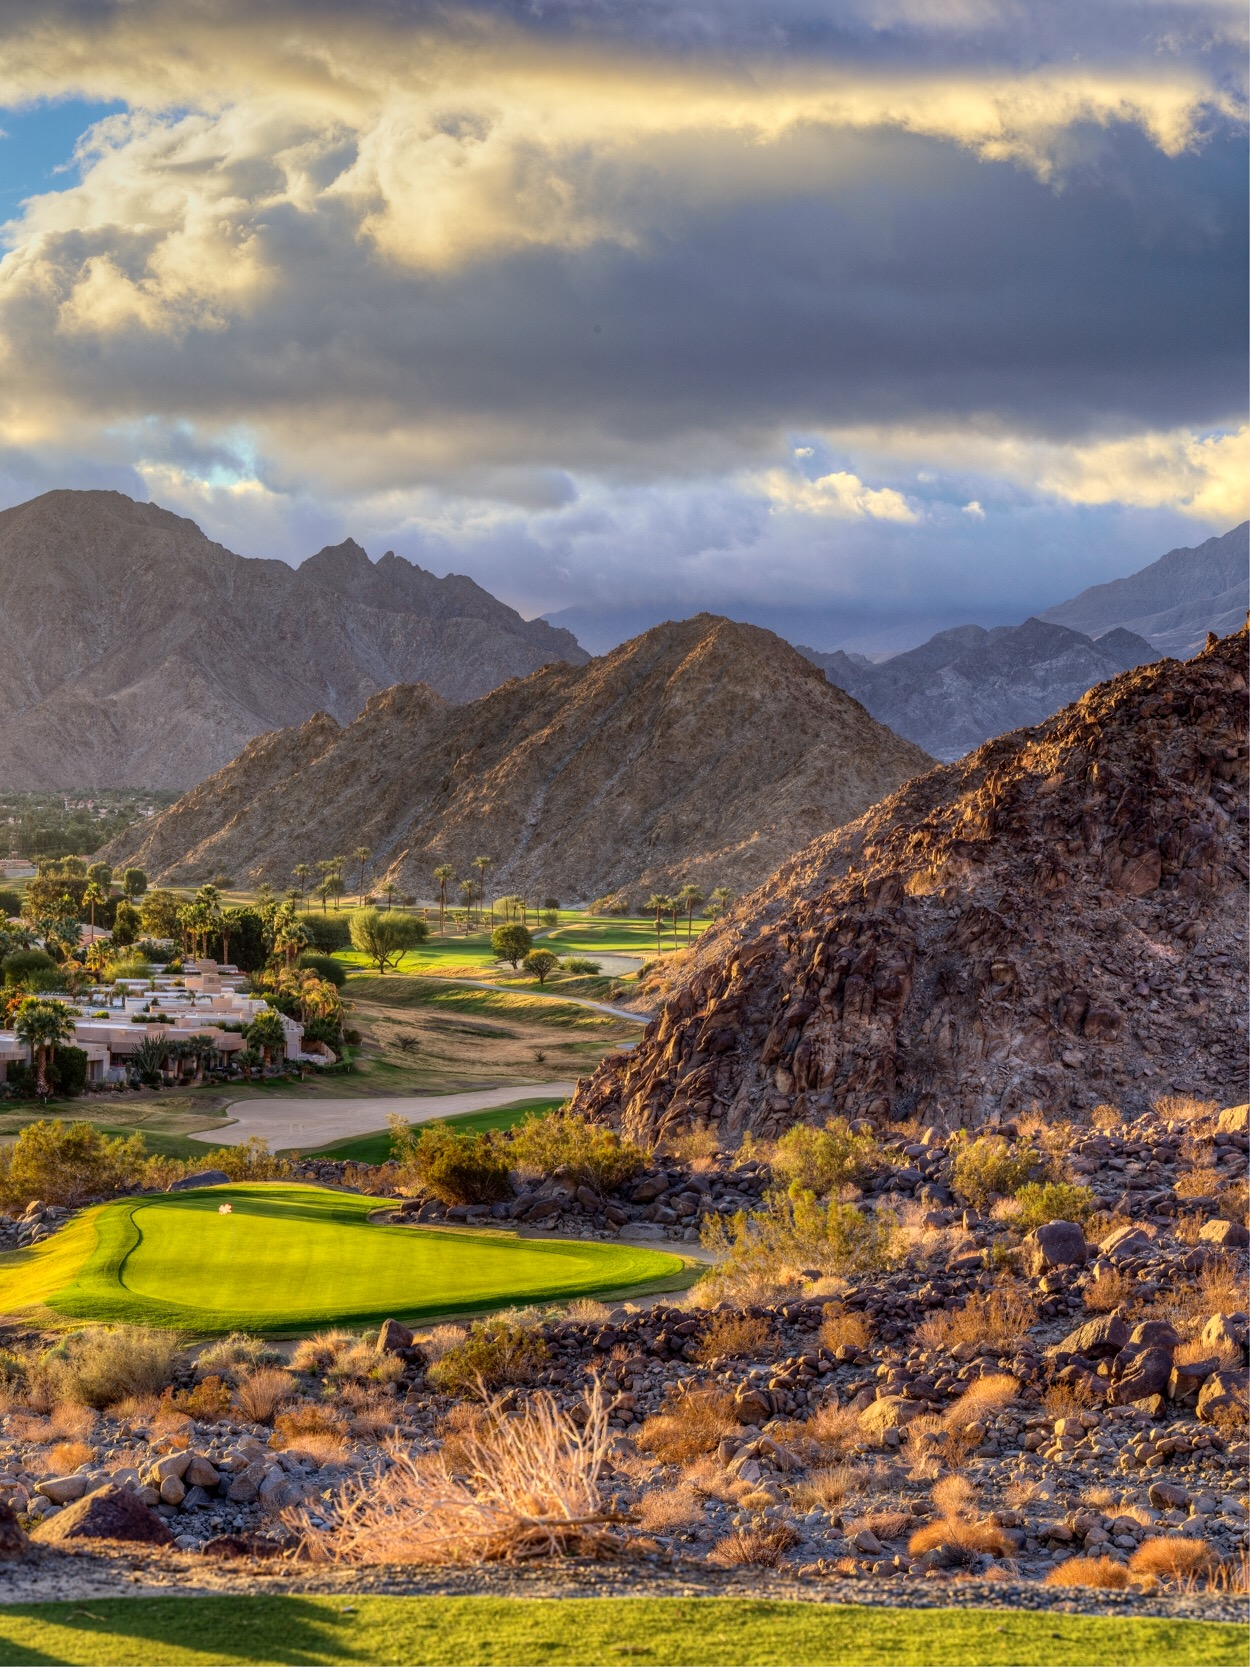 Par 3 valley view by bab in Regular Member Gallery